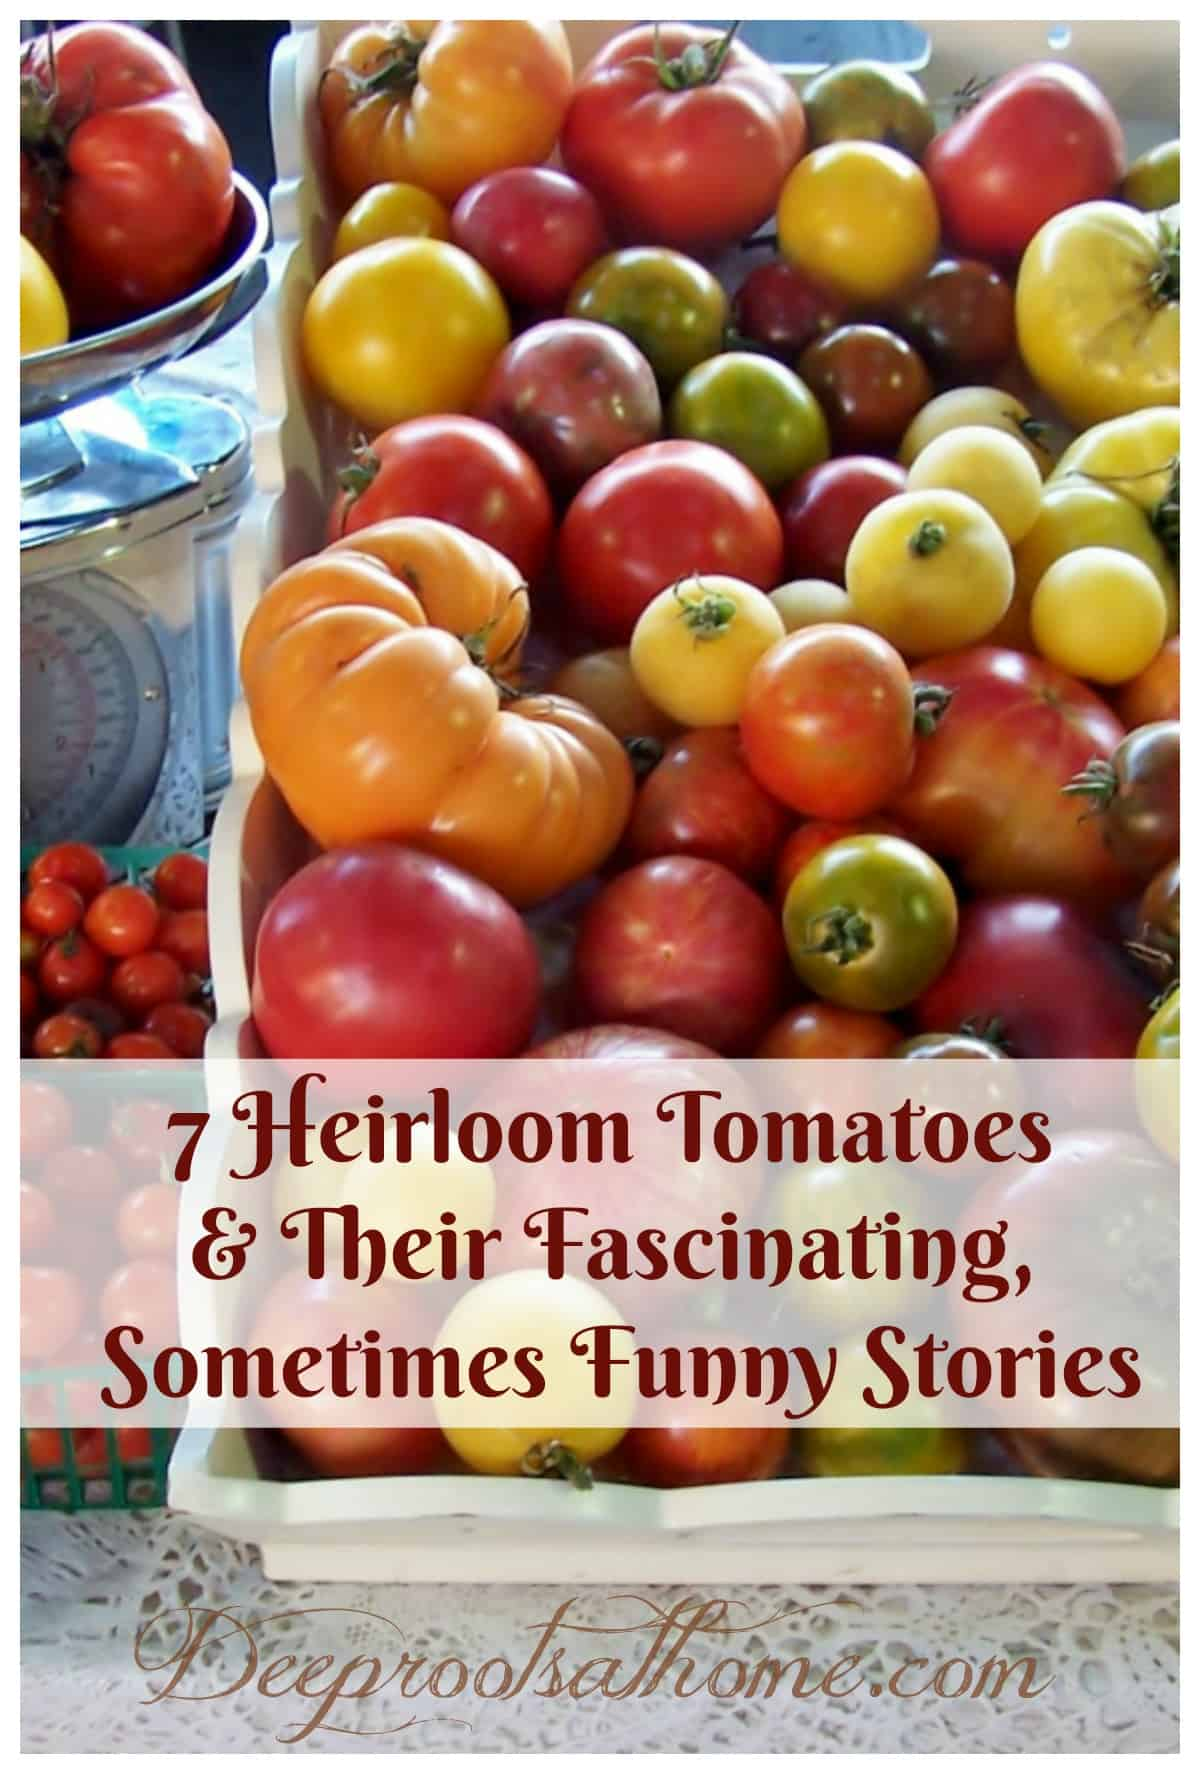 Heirloom Tomatoes & Their Fascinating, Sometimes Funny Stories. A colorful display of the many varieties of heirloom tomatoes available on a table top.